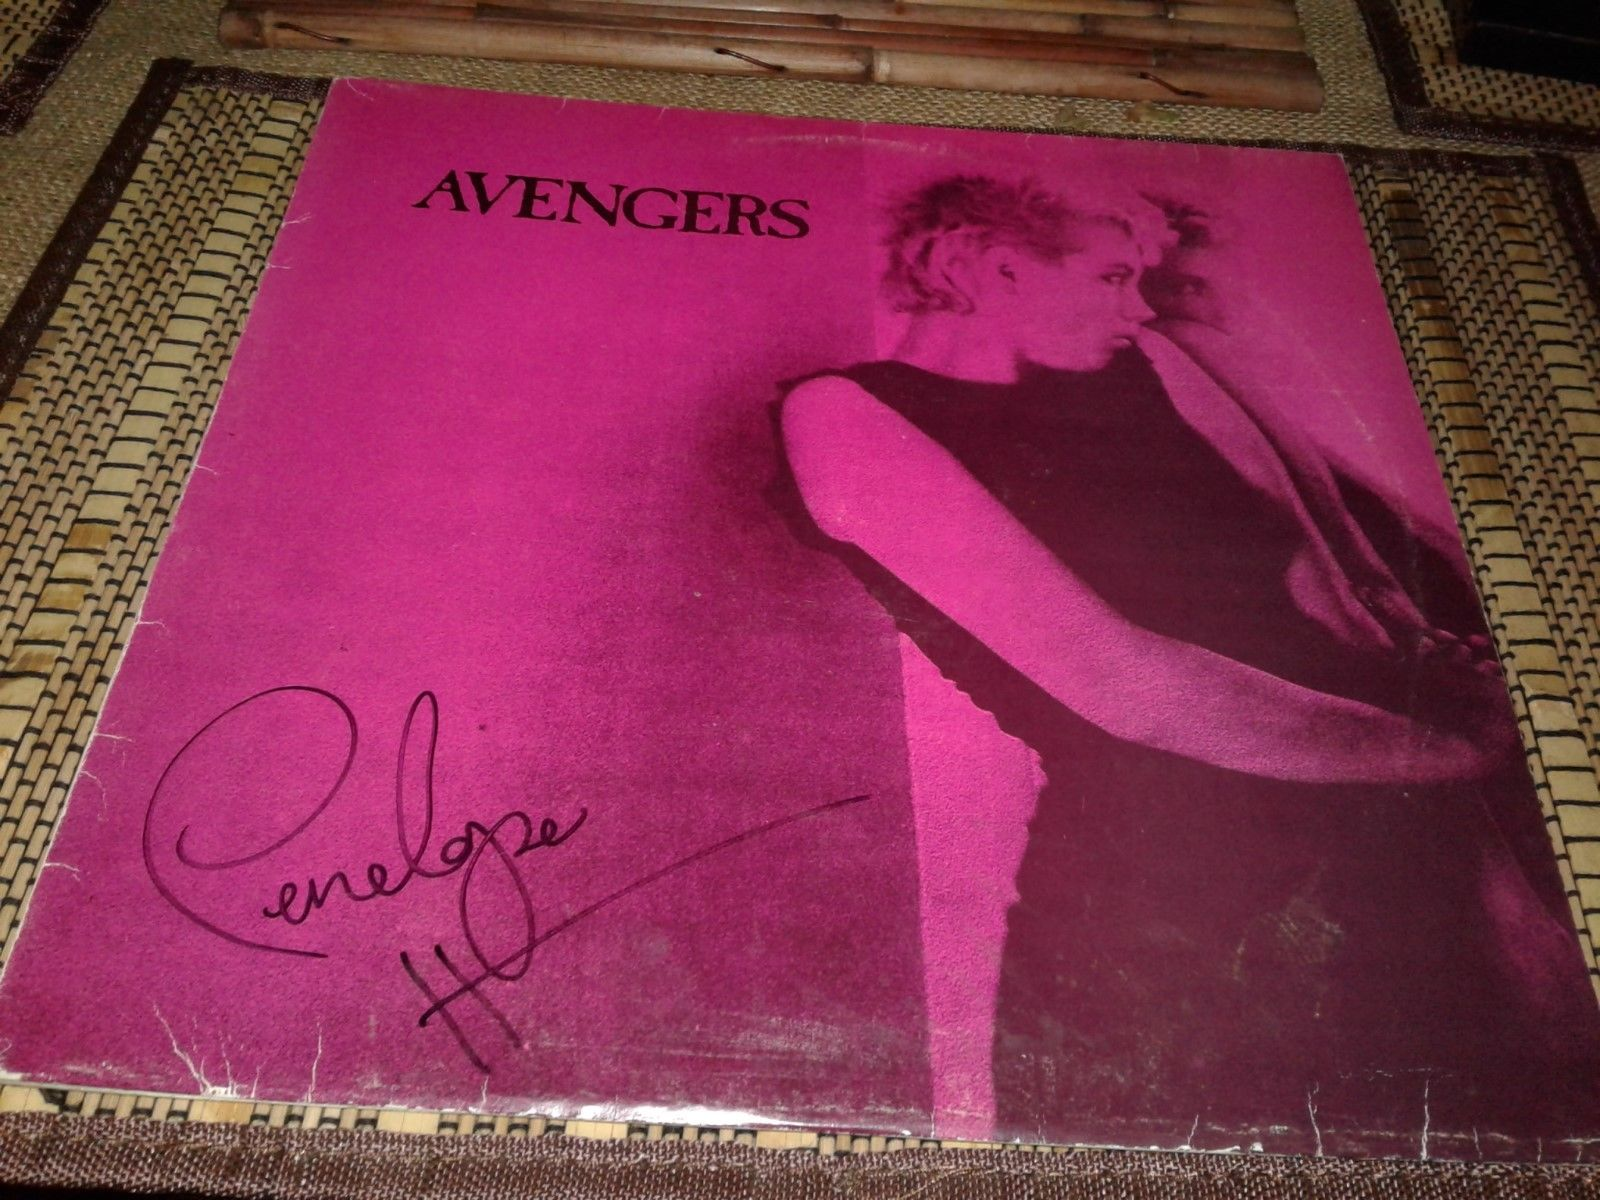 Avengers Vinyl Album Signed Penelope Houston Punk 1977 Clash Sex Pistols fans